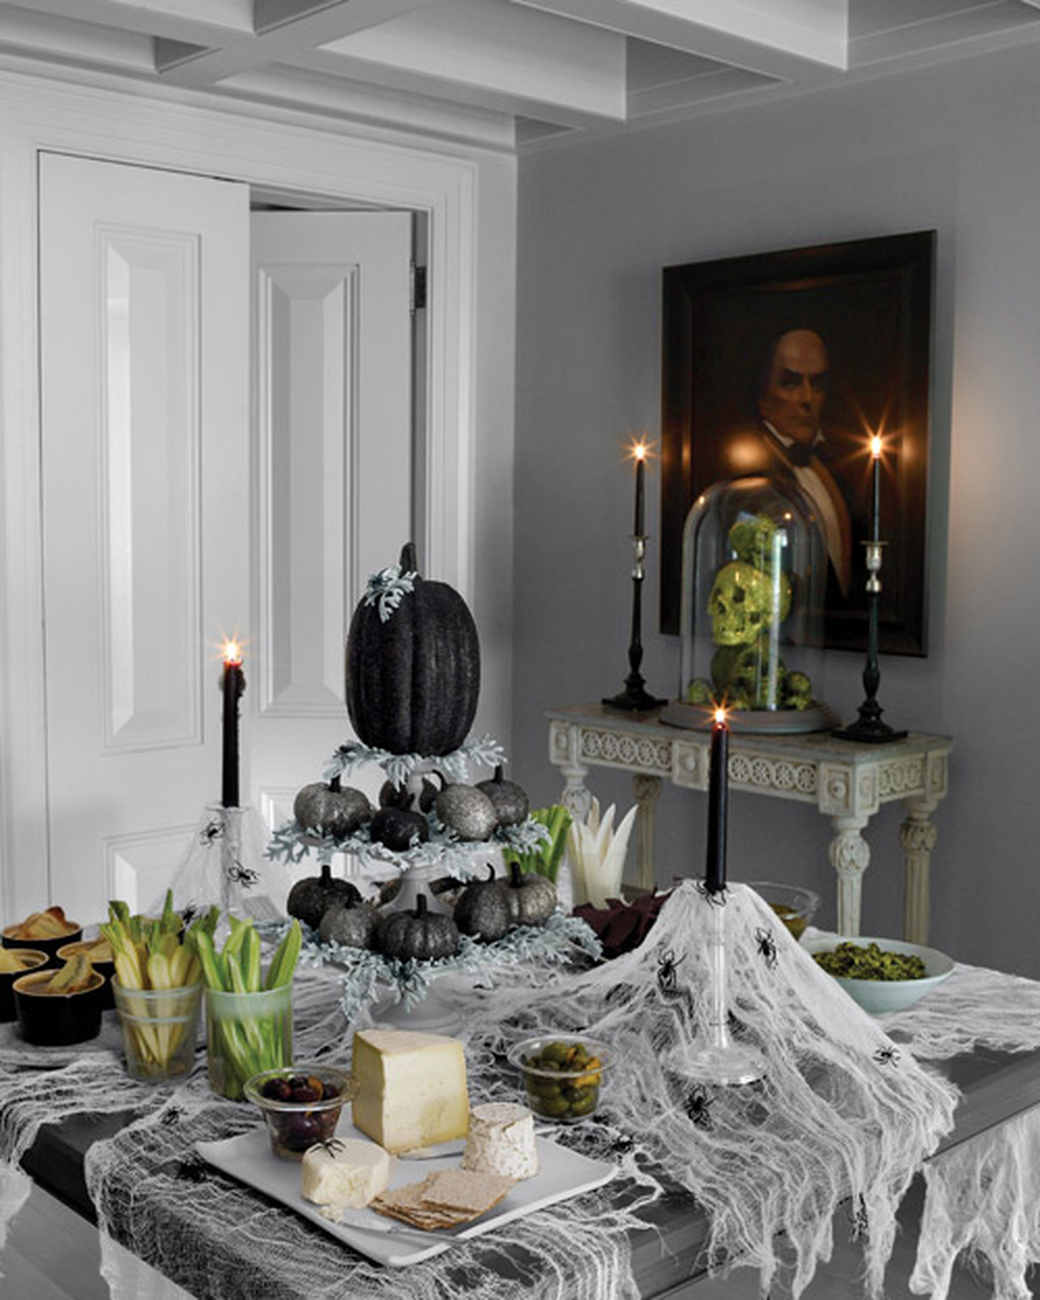 The Best Dining Tables Décor for Halloween  Dining Tables Décor for Halloween The Best Dining Tables Décor for Halloween The Best Dining Tables D  cor for Halloween9